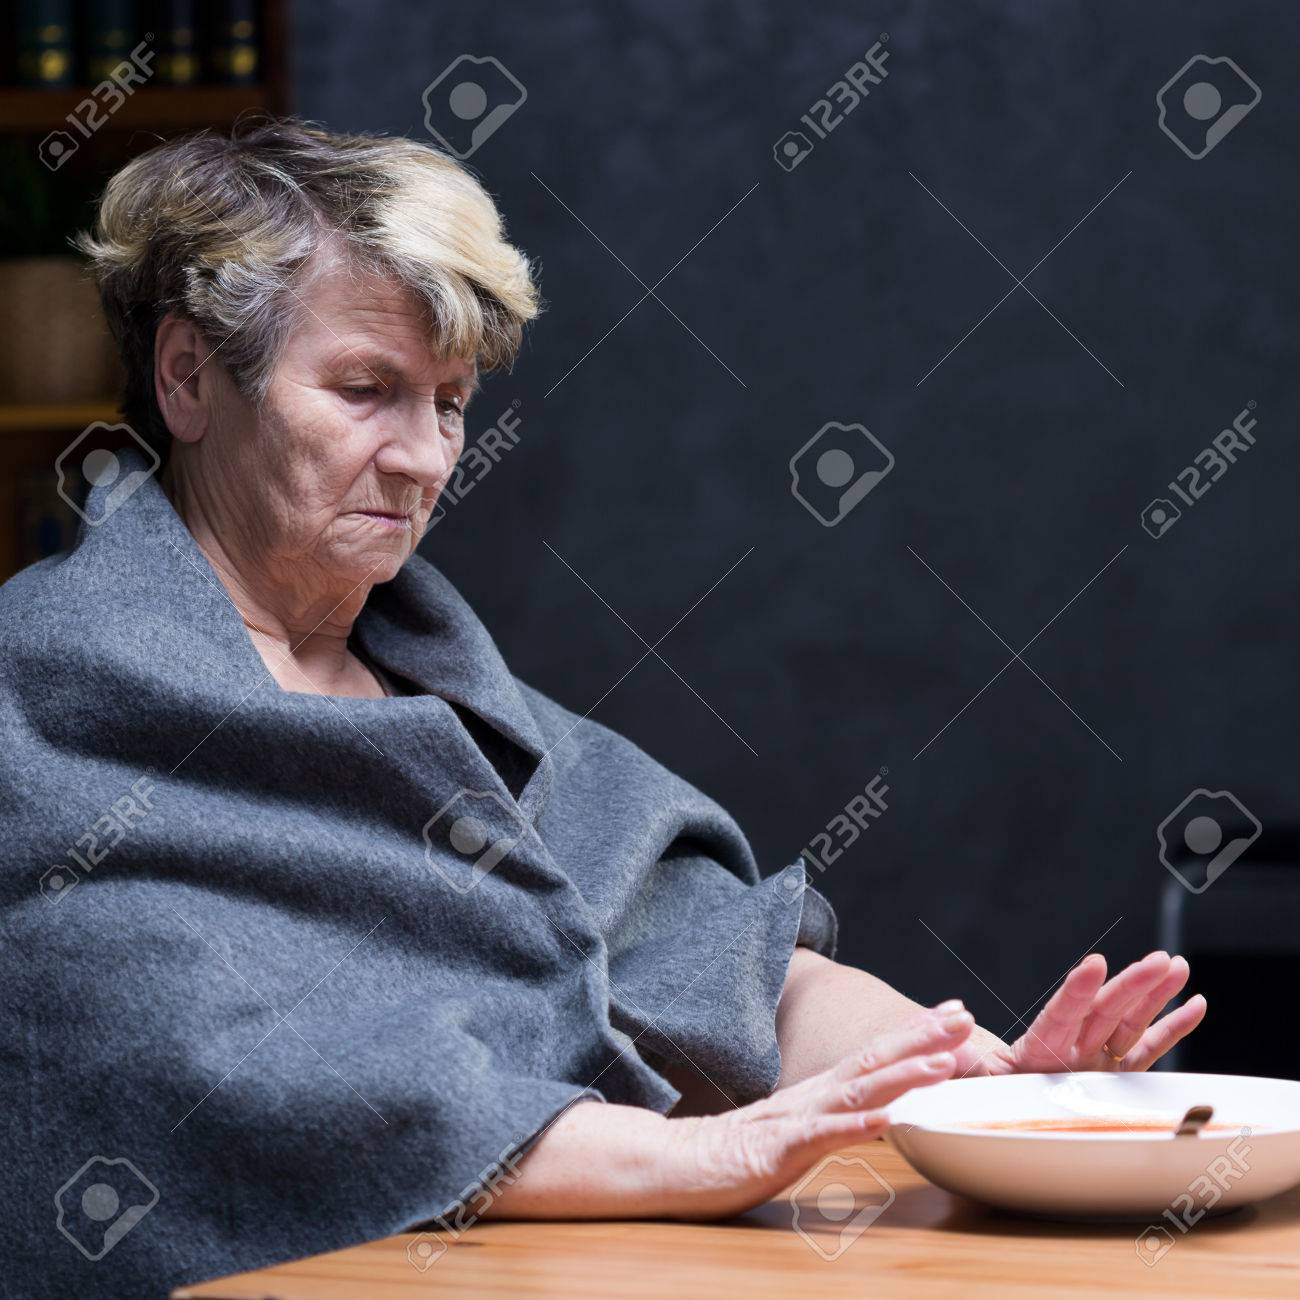 Depressed elderly woman refusing to eat healthy meal Banque d'images - 70236633